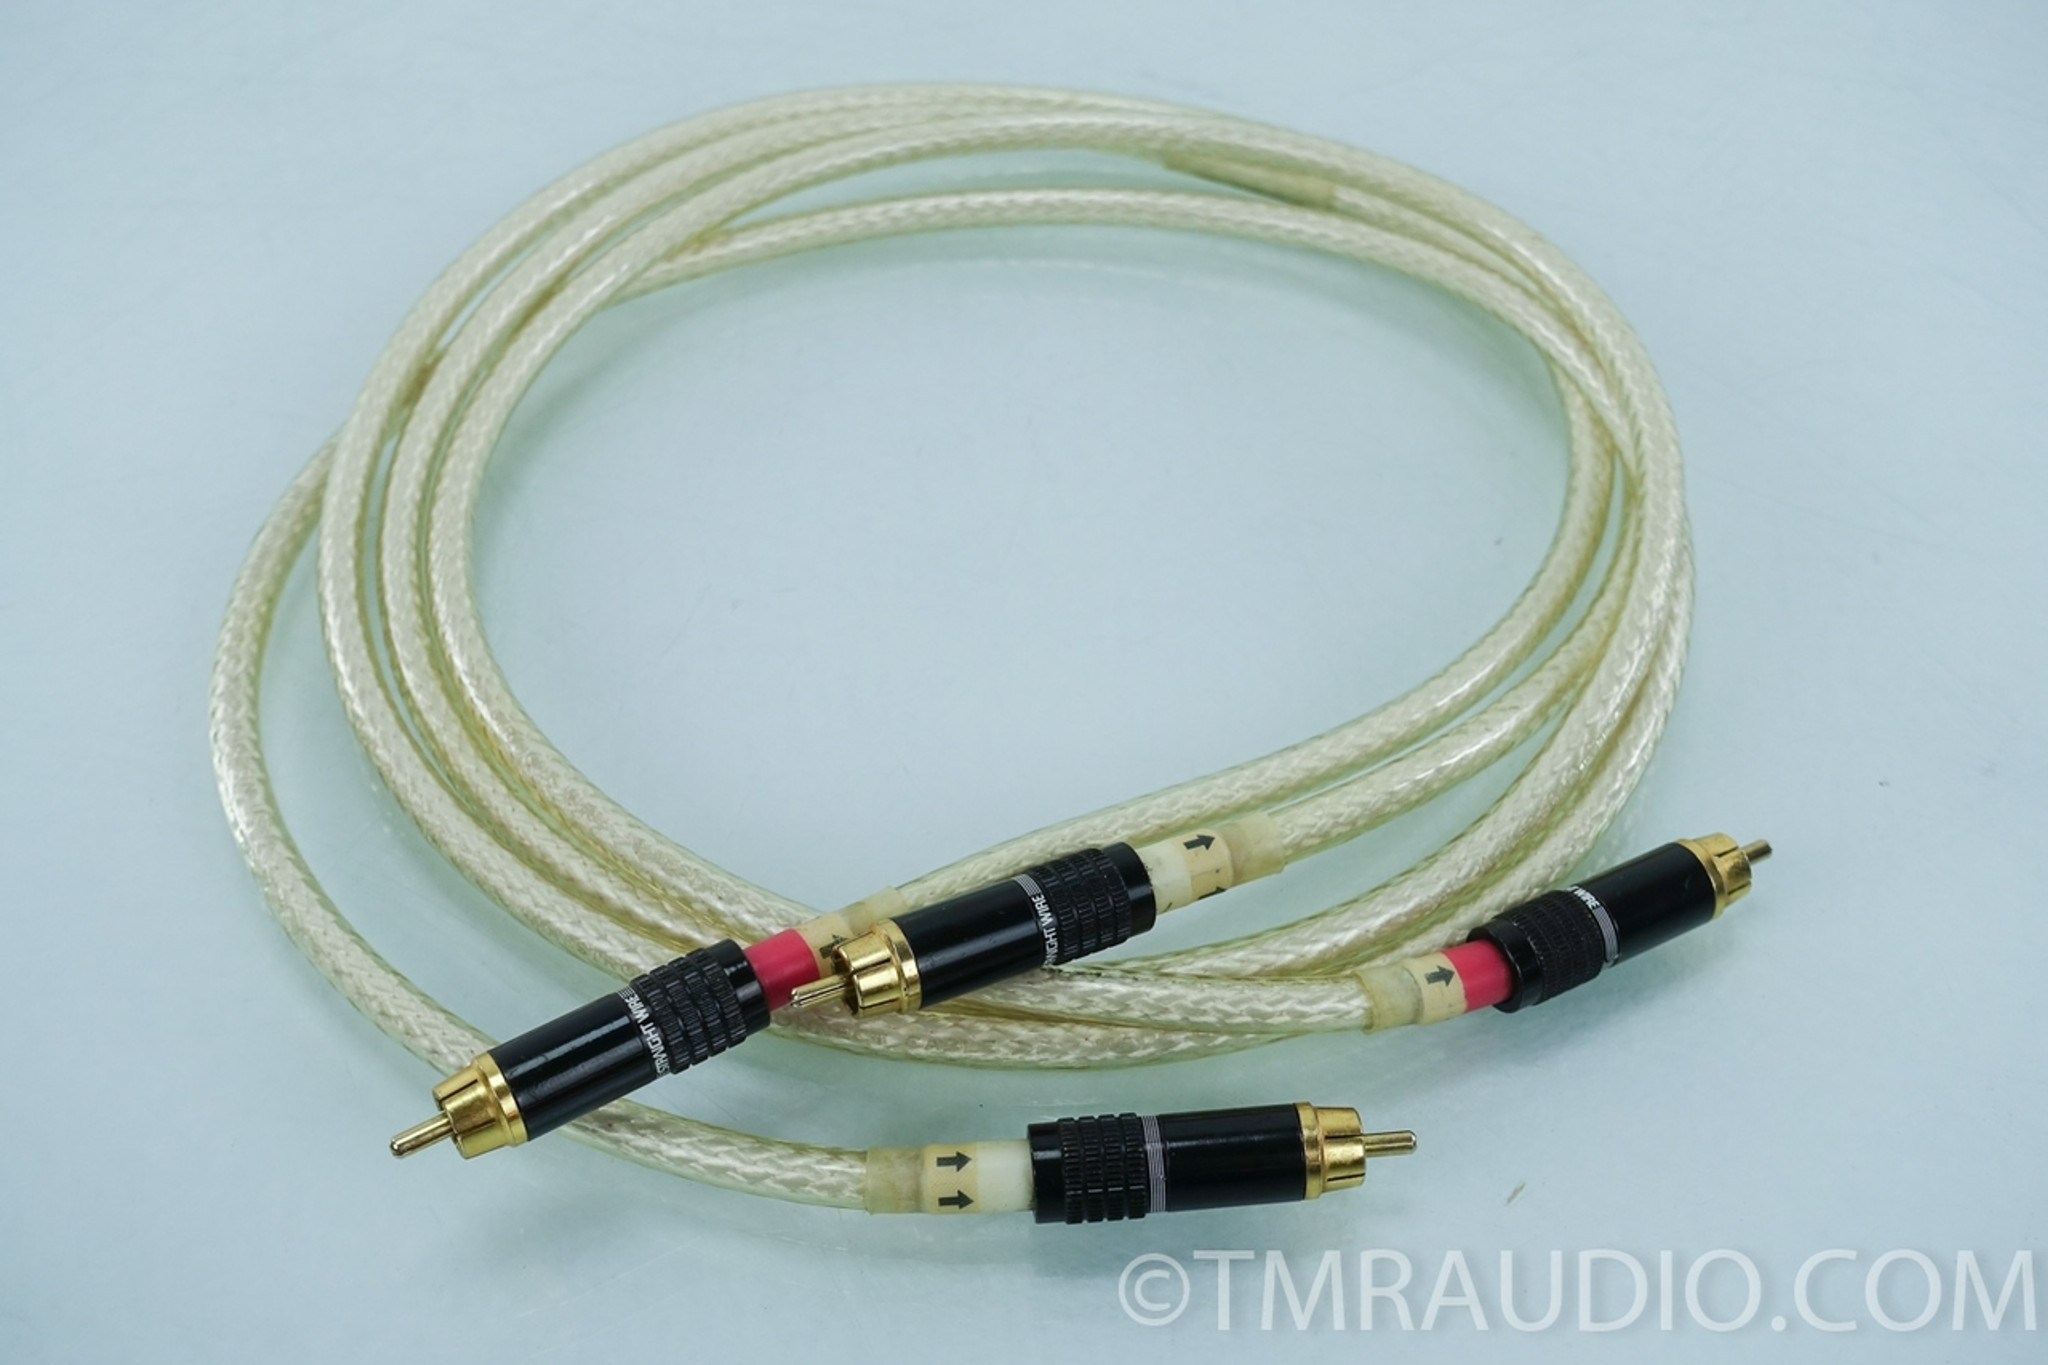 Straight Wire Maestro RCA Cables; 1.5 meter Pair Interconnects - The ...